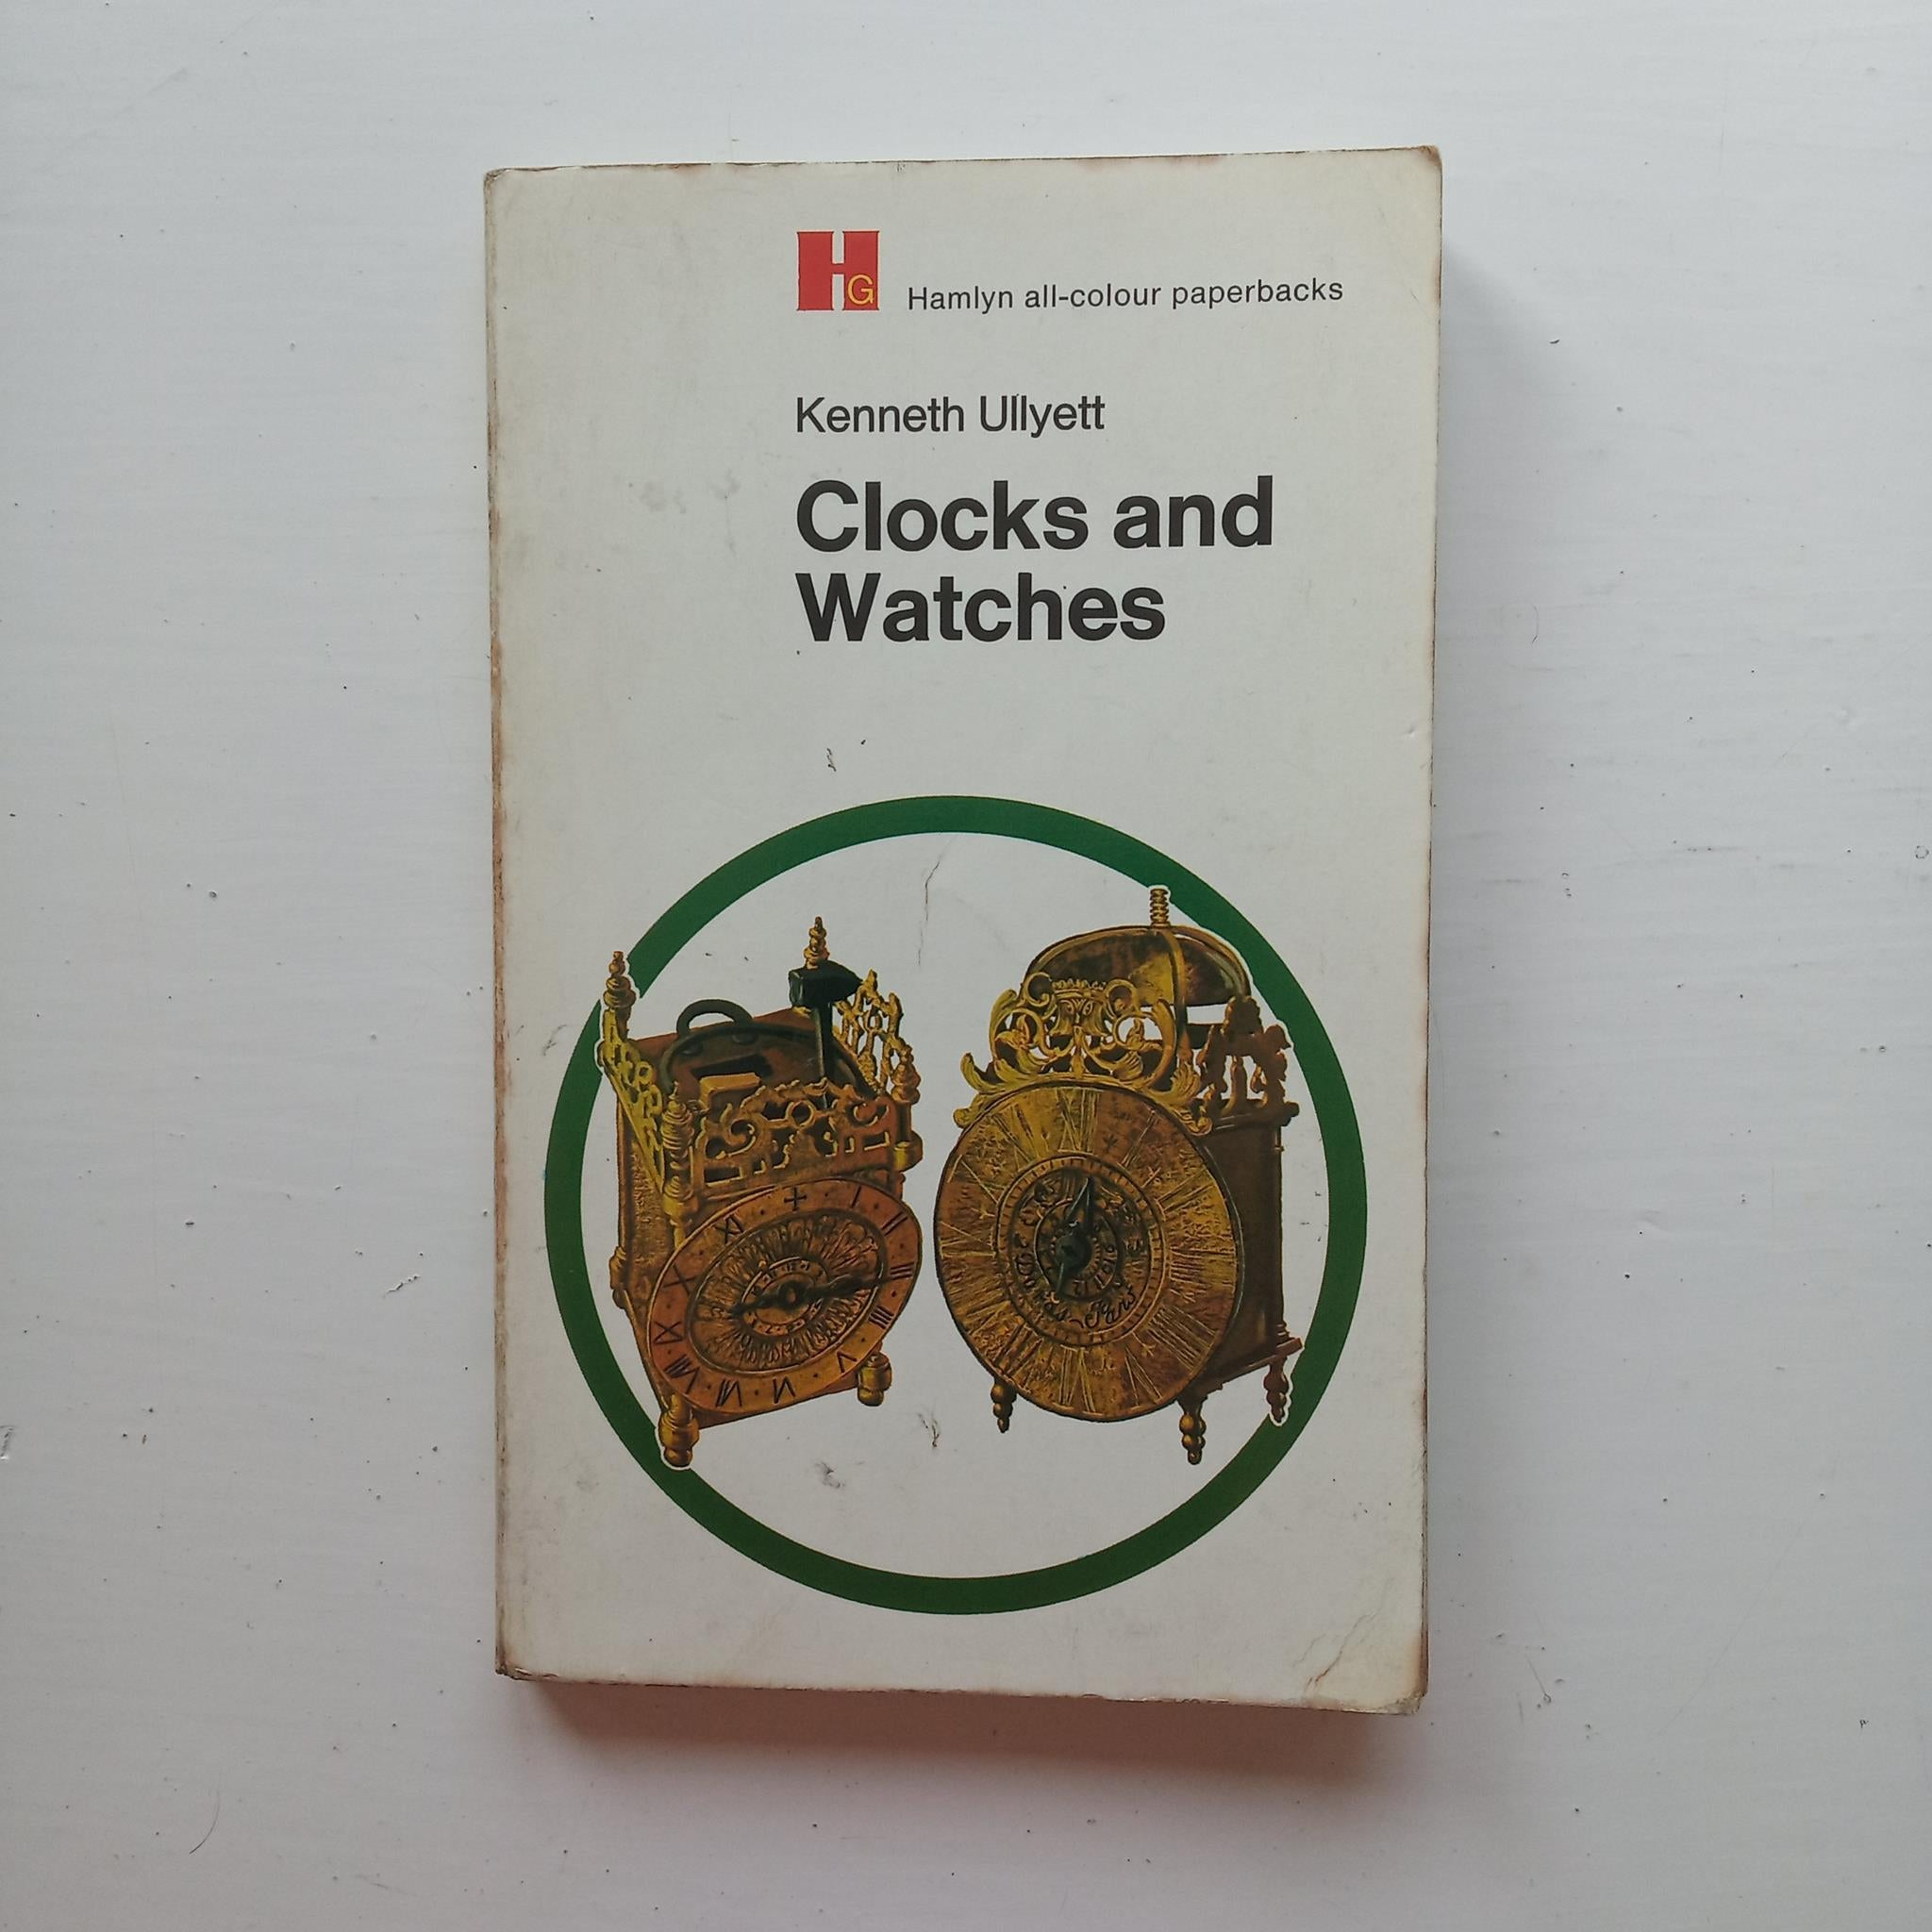 Clocks and Watches by Kenneth Ullyett